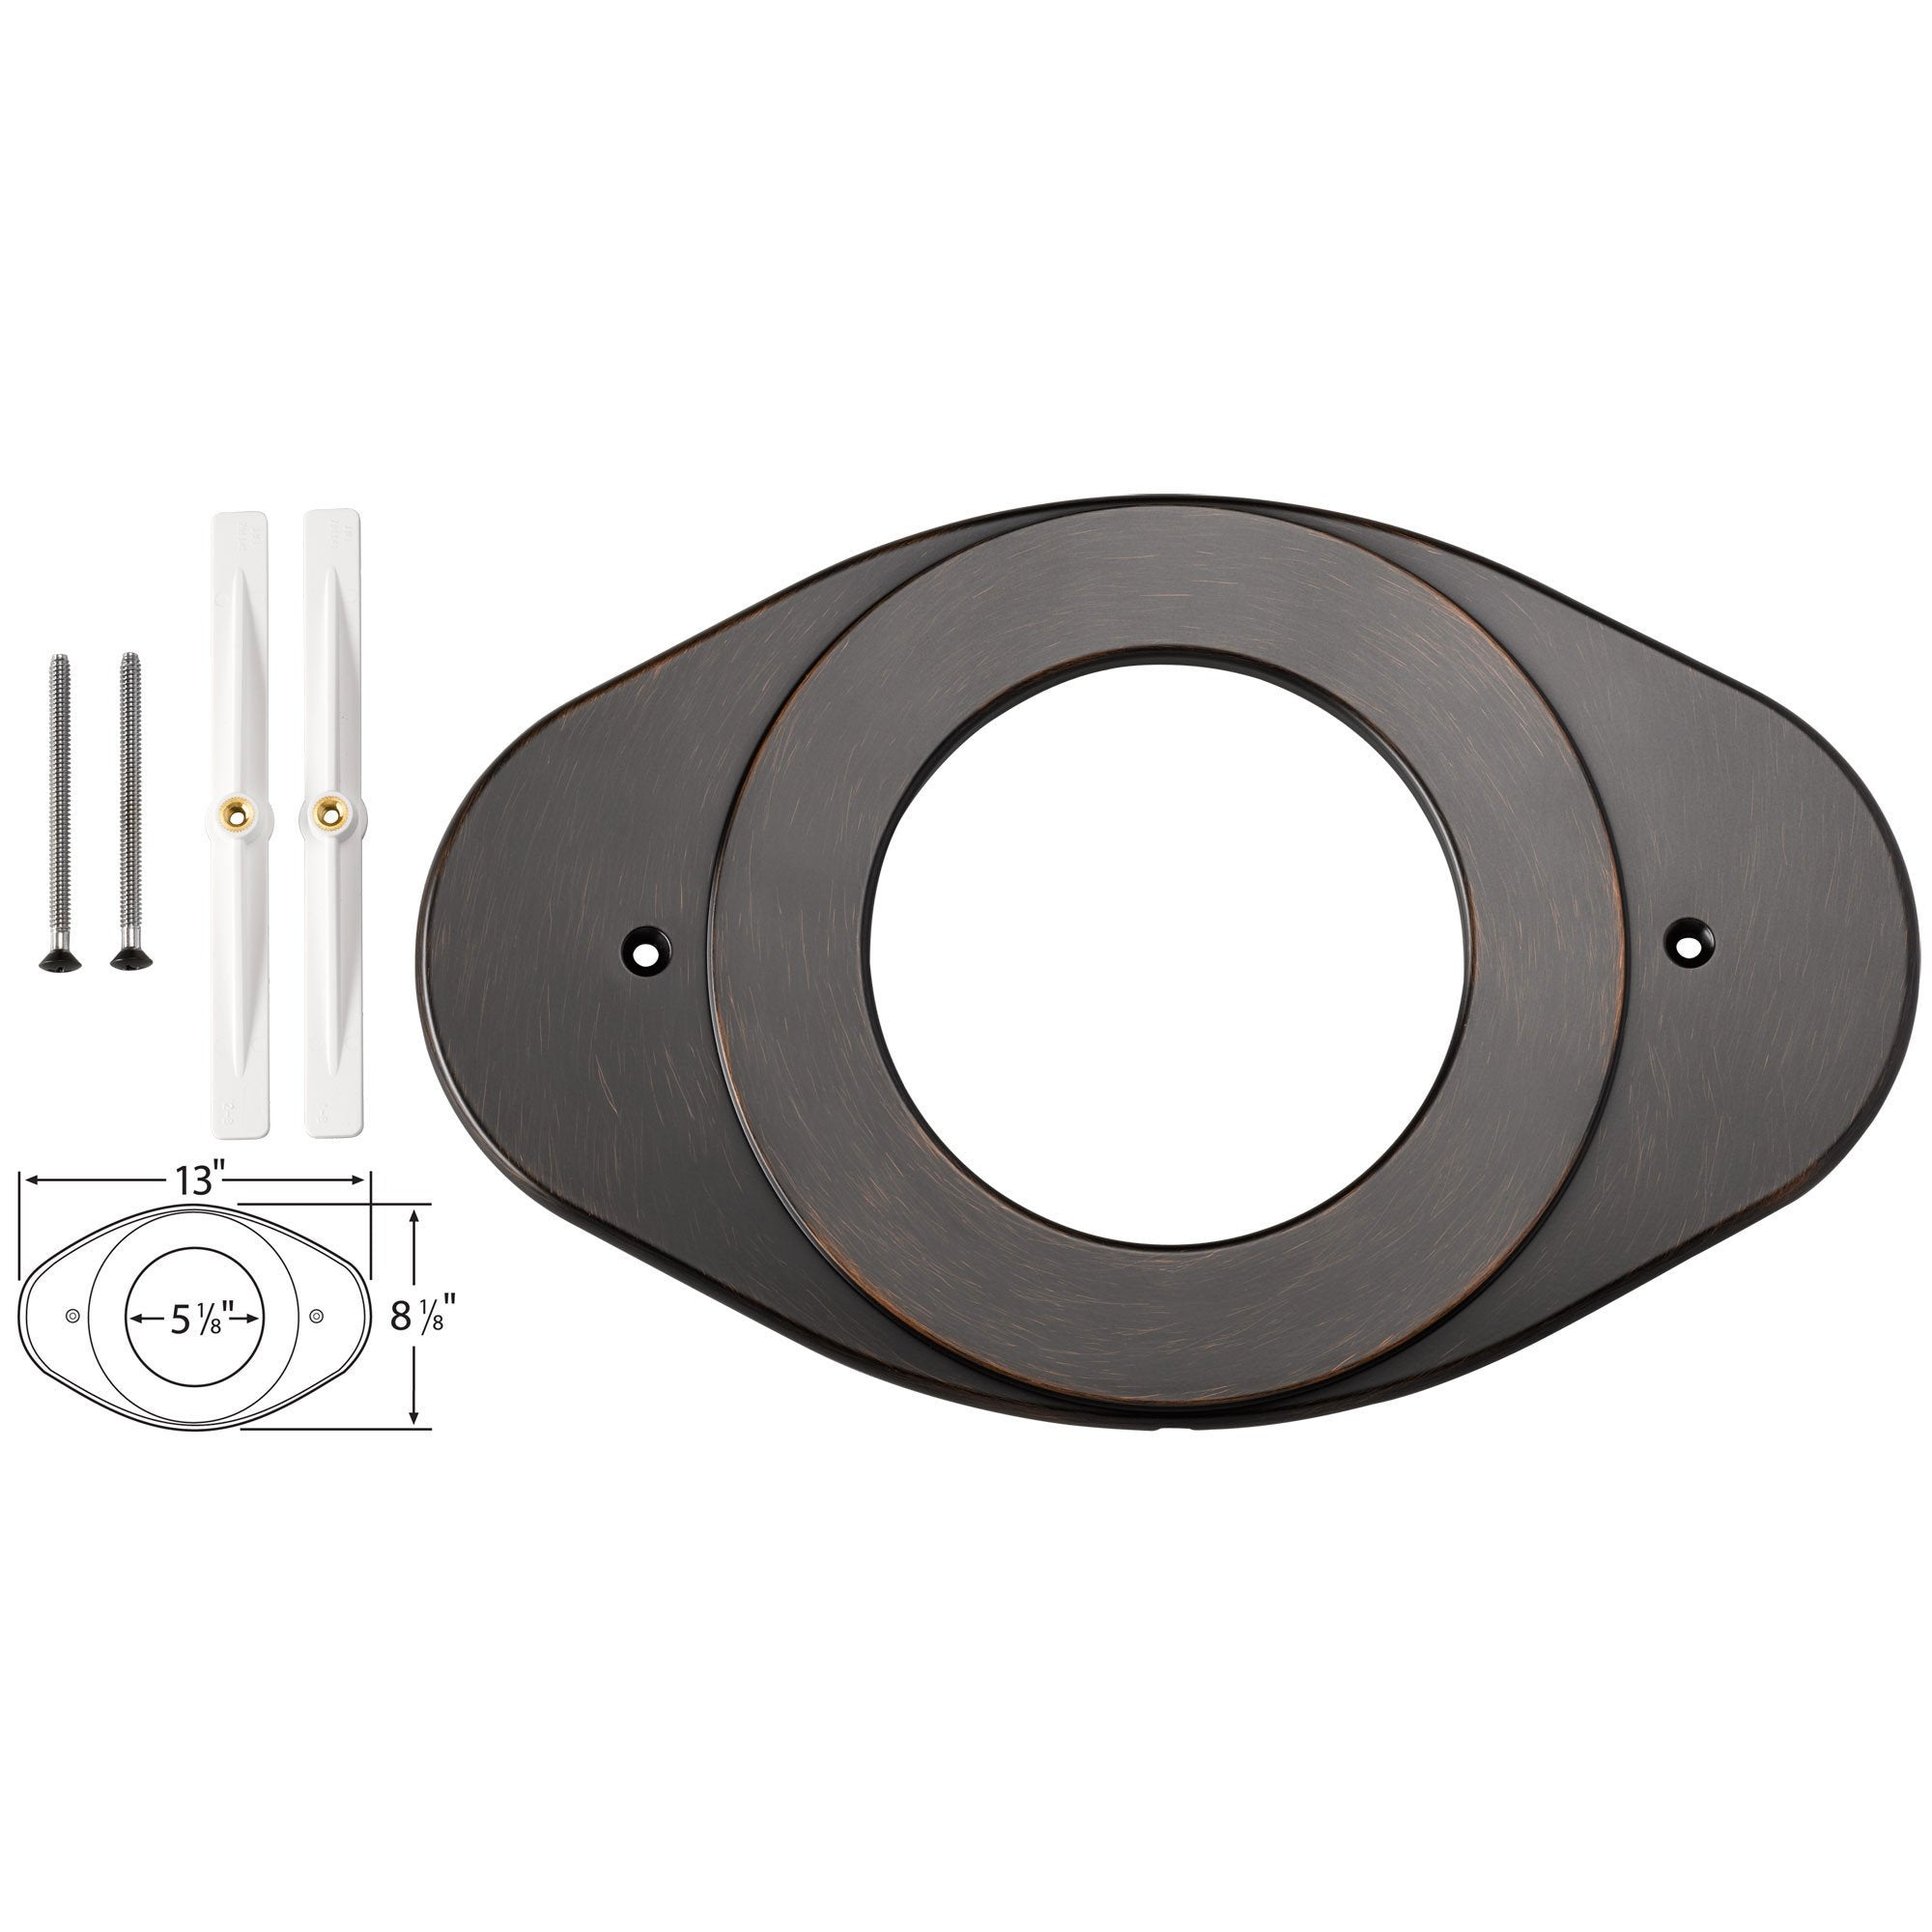 Delta Shower Valve Renovation Cover Plate in Venetian Bronze 550040